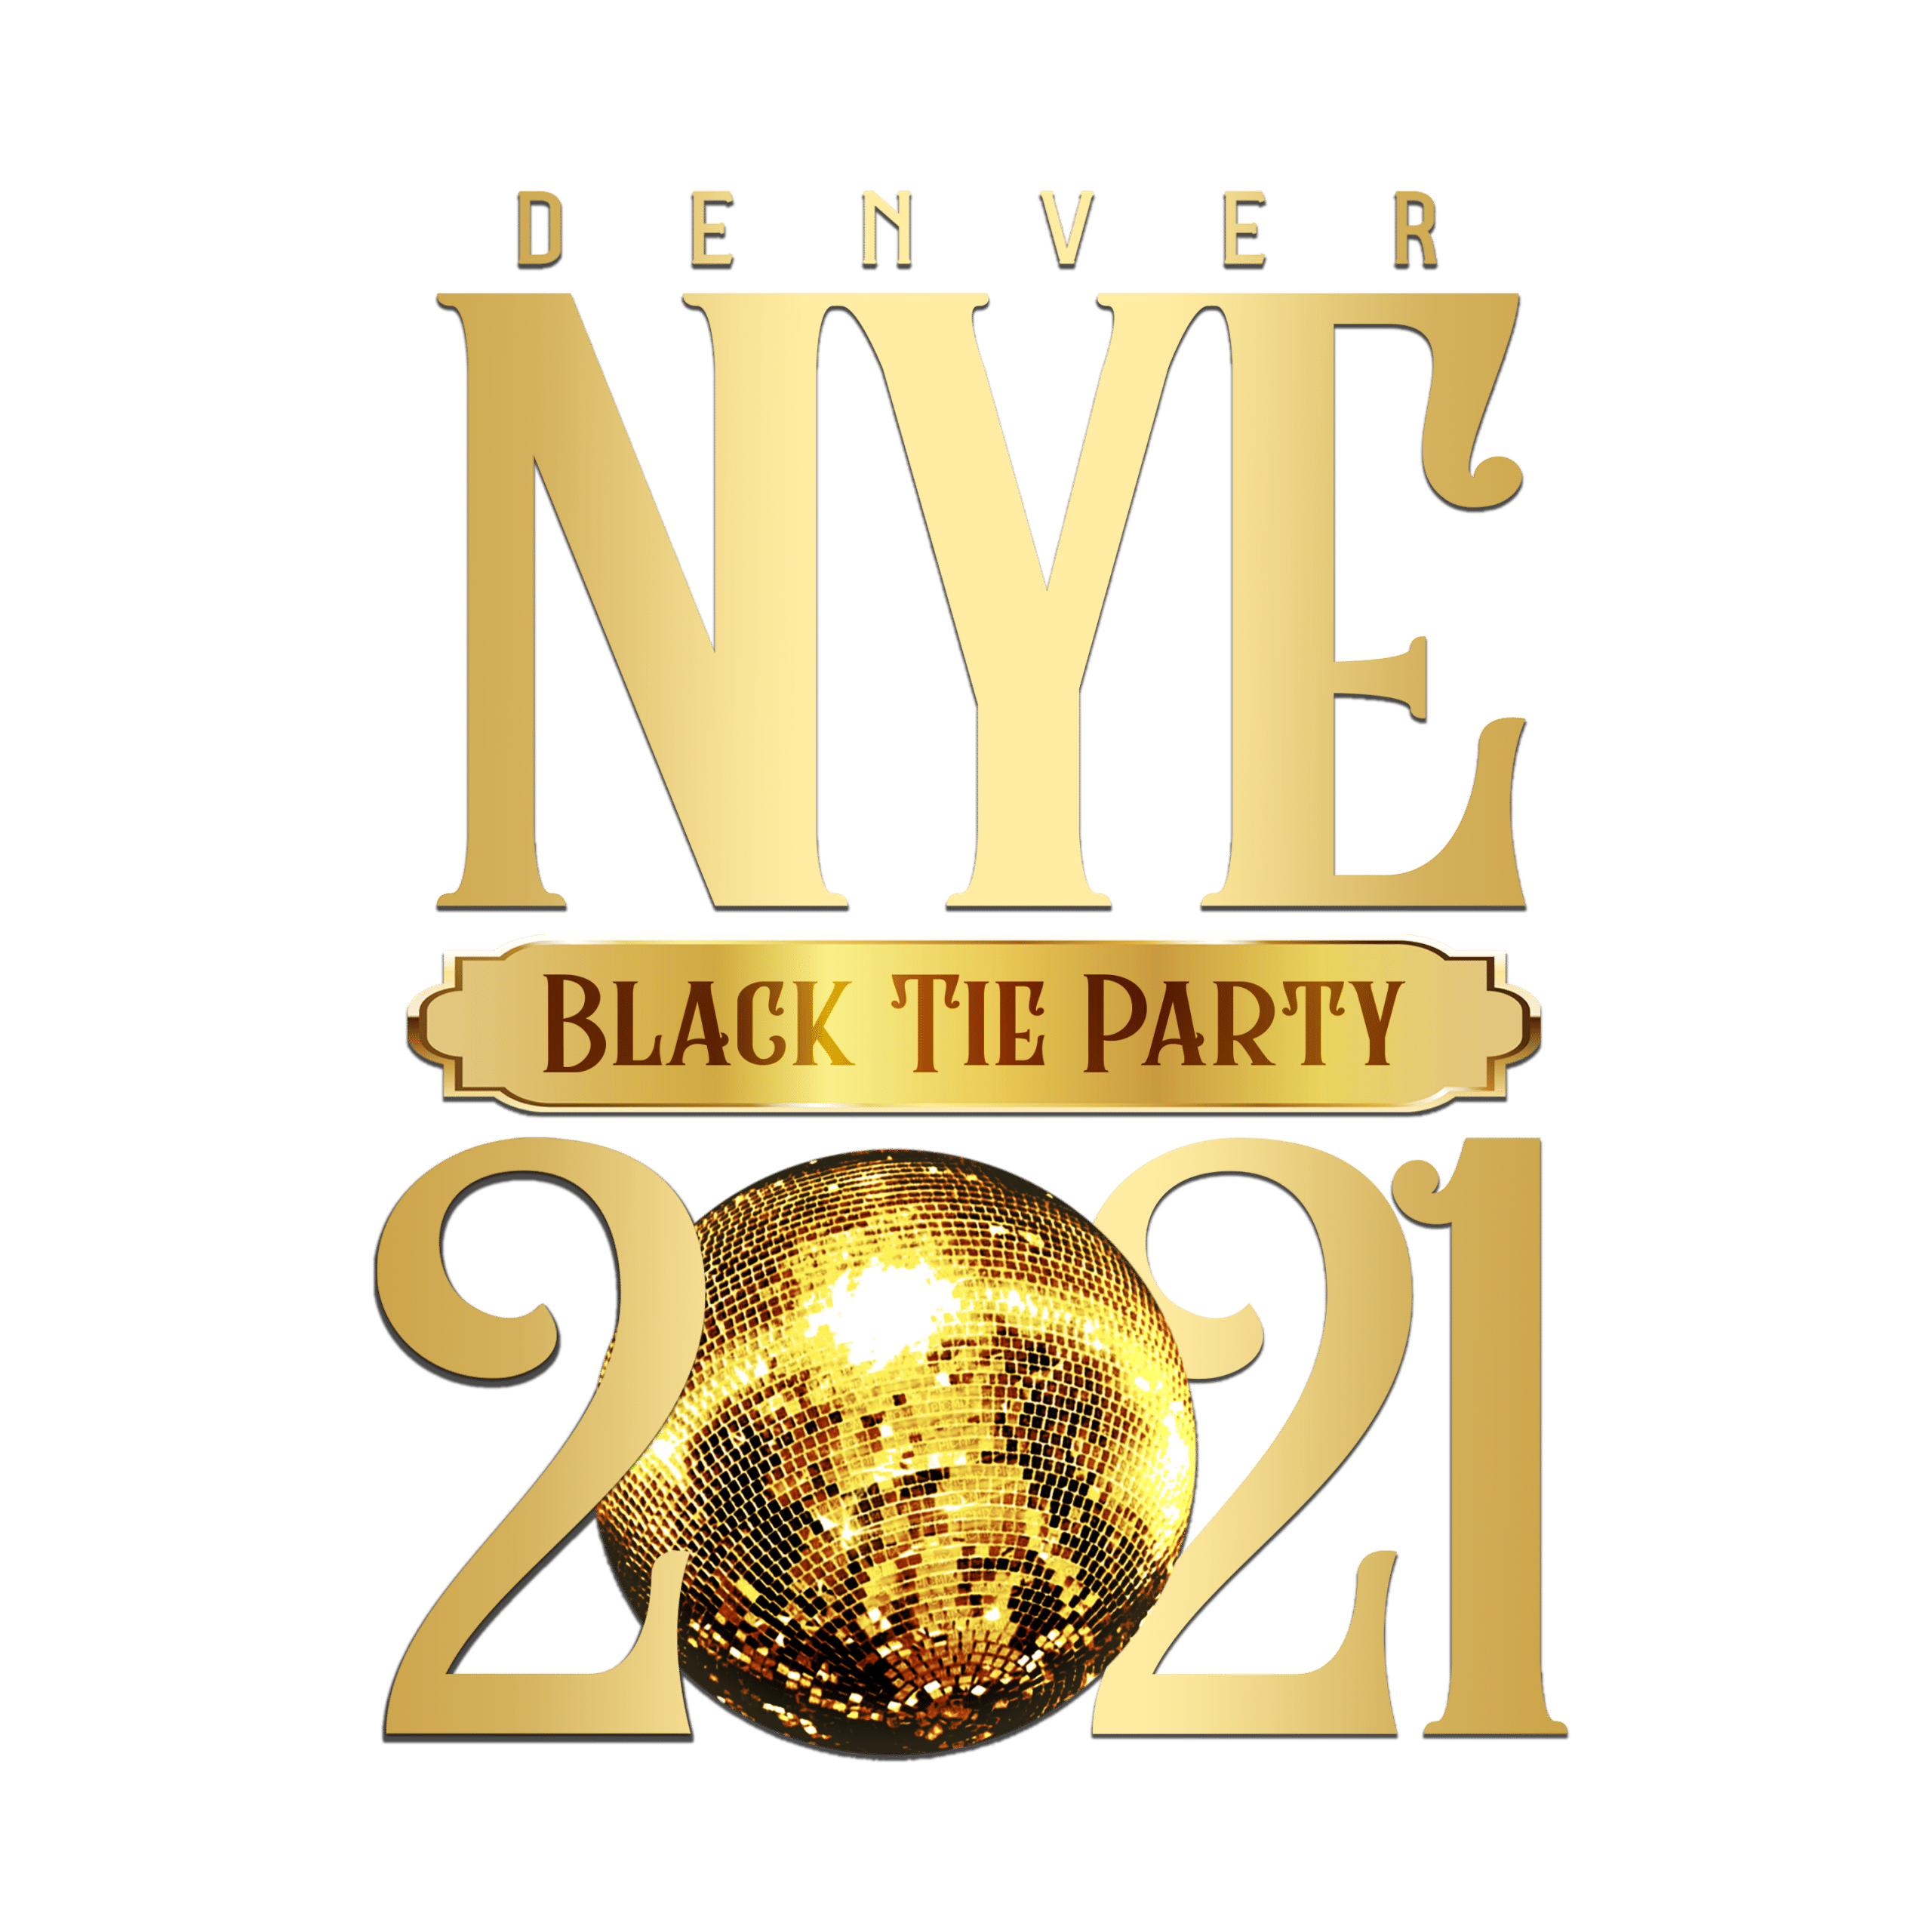 New Years Eve Denver | Denver New Years Eve Black Tie Party 2021 - 2022